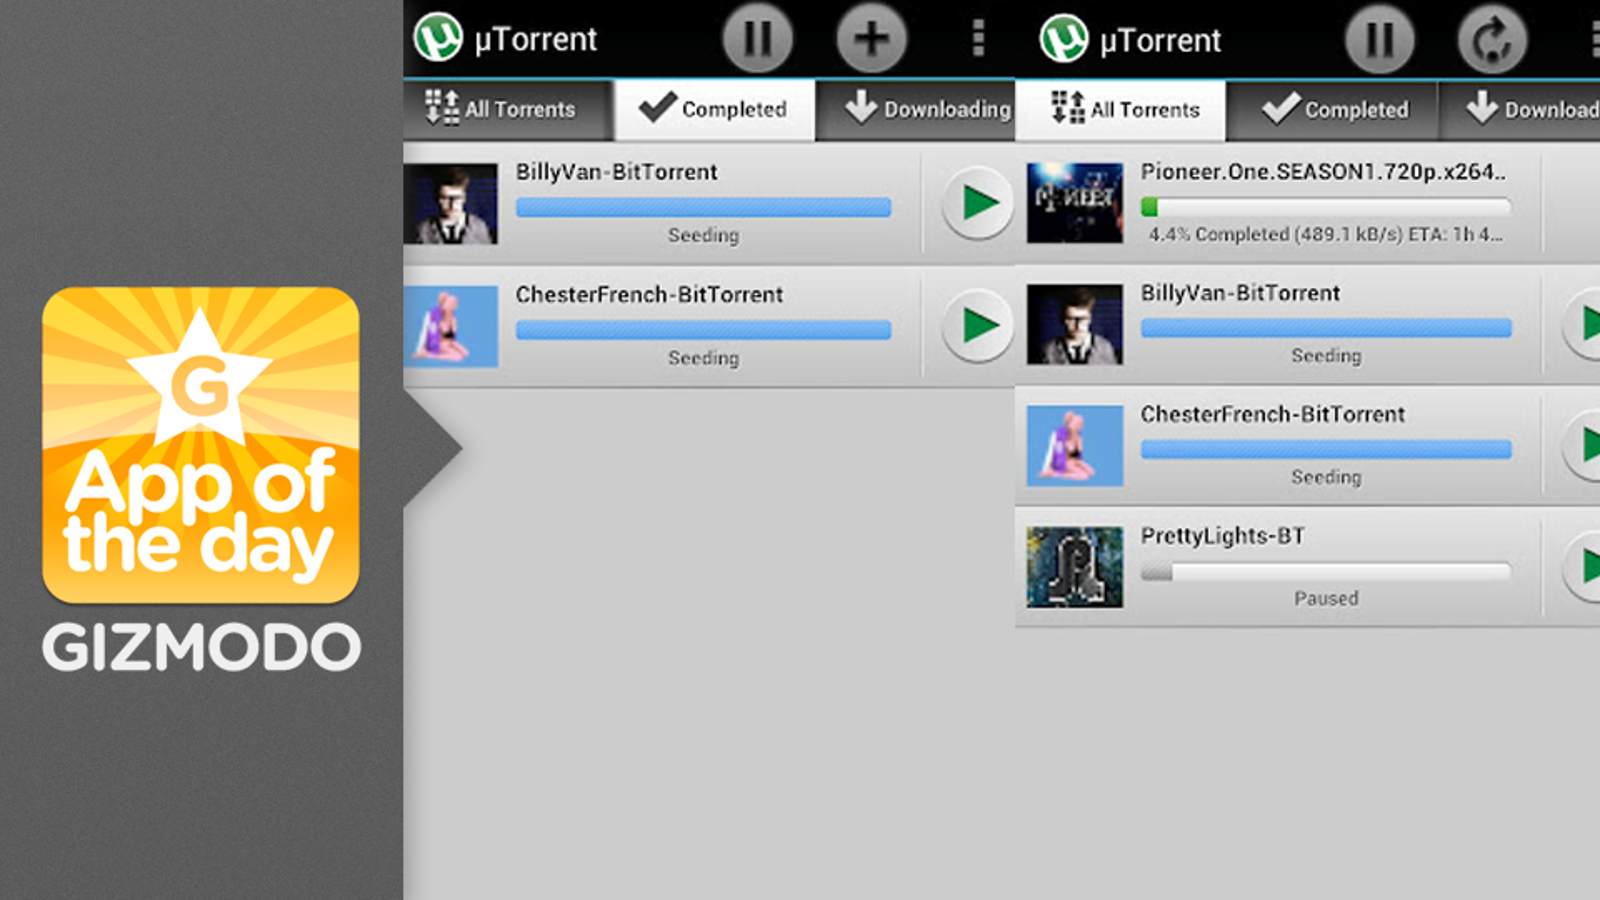 uTorrent: Download Directly to Your Phone